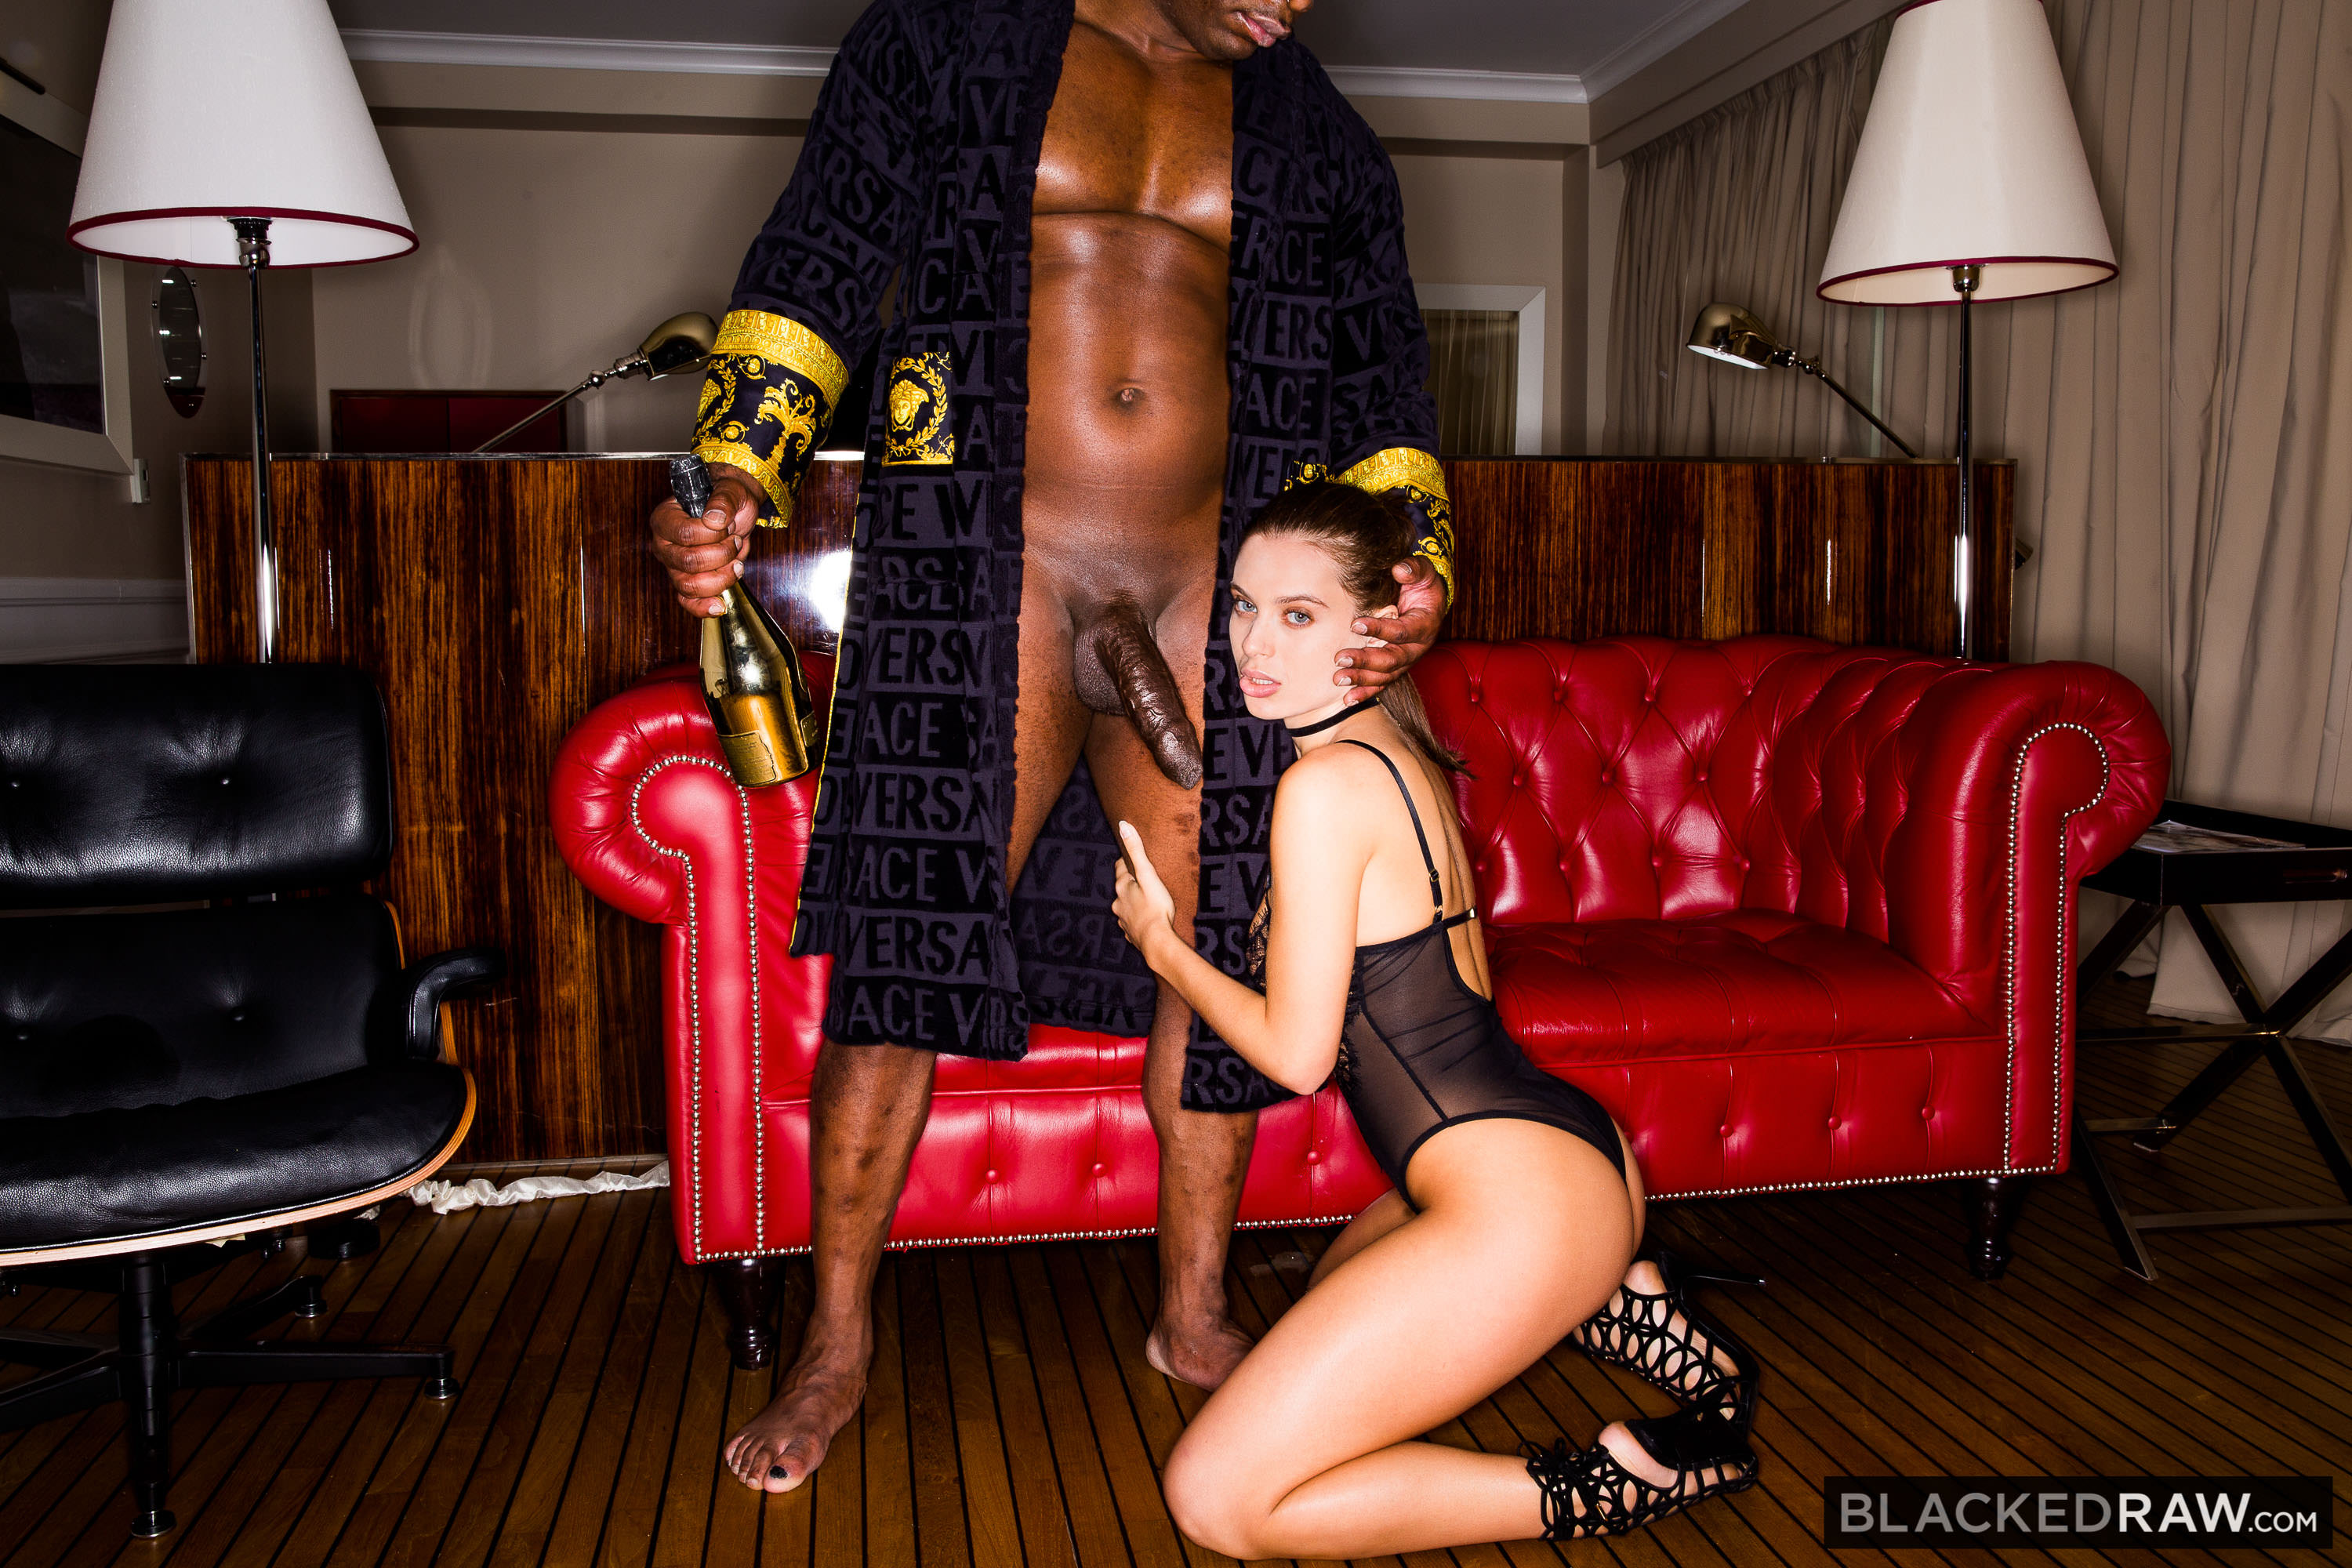 Blackedraw girlfriend takes her open relationship too far wi - 1 part 8